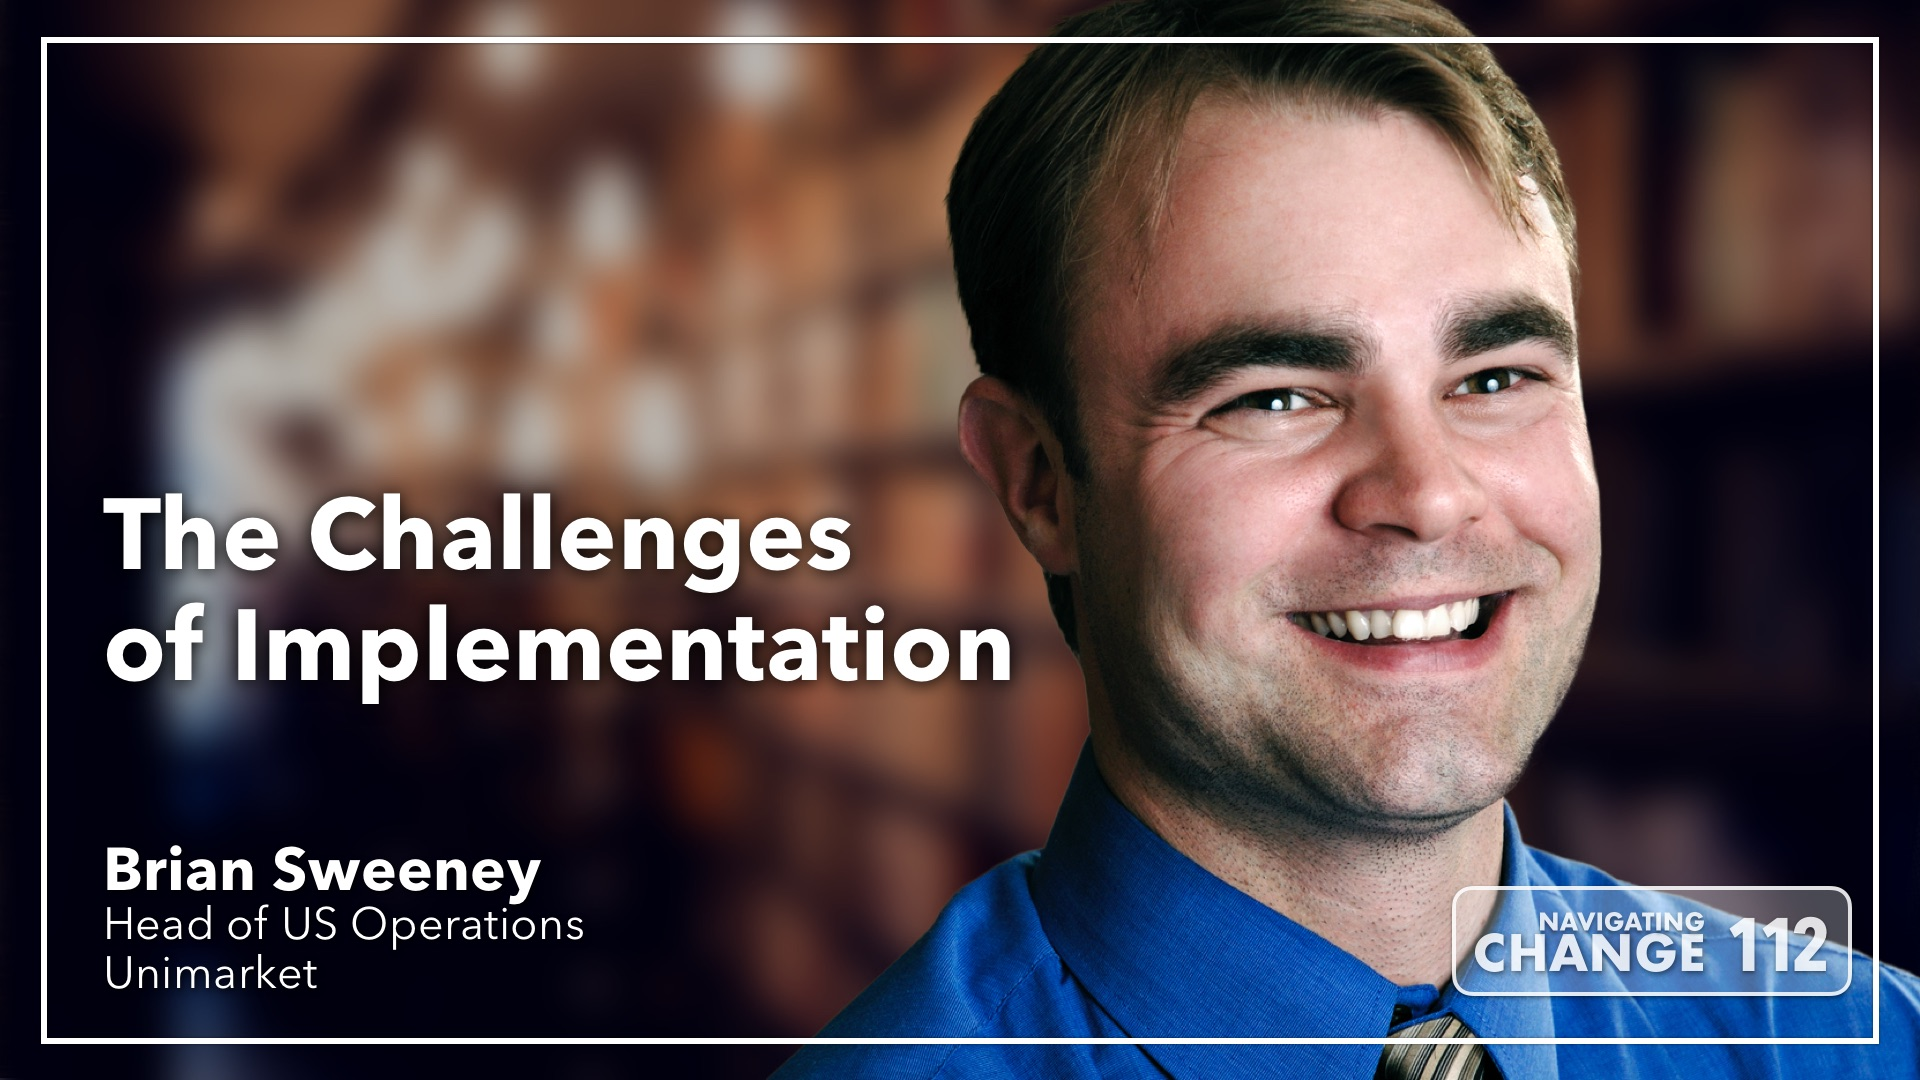 Listen to The Challenges of Implementation with Brian Sweeney on Navigating Change The Education Podcast